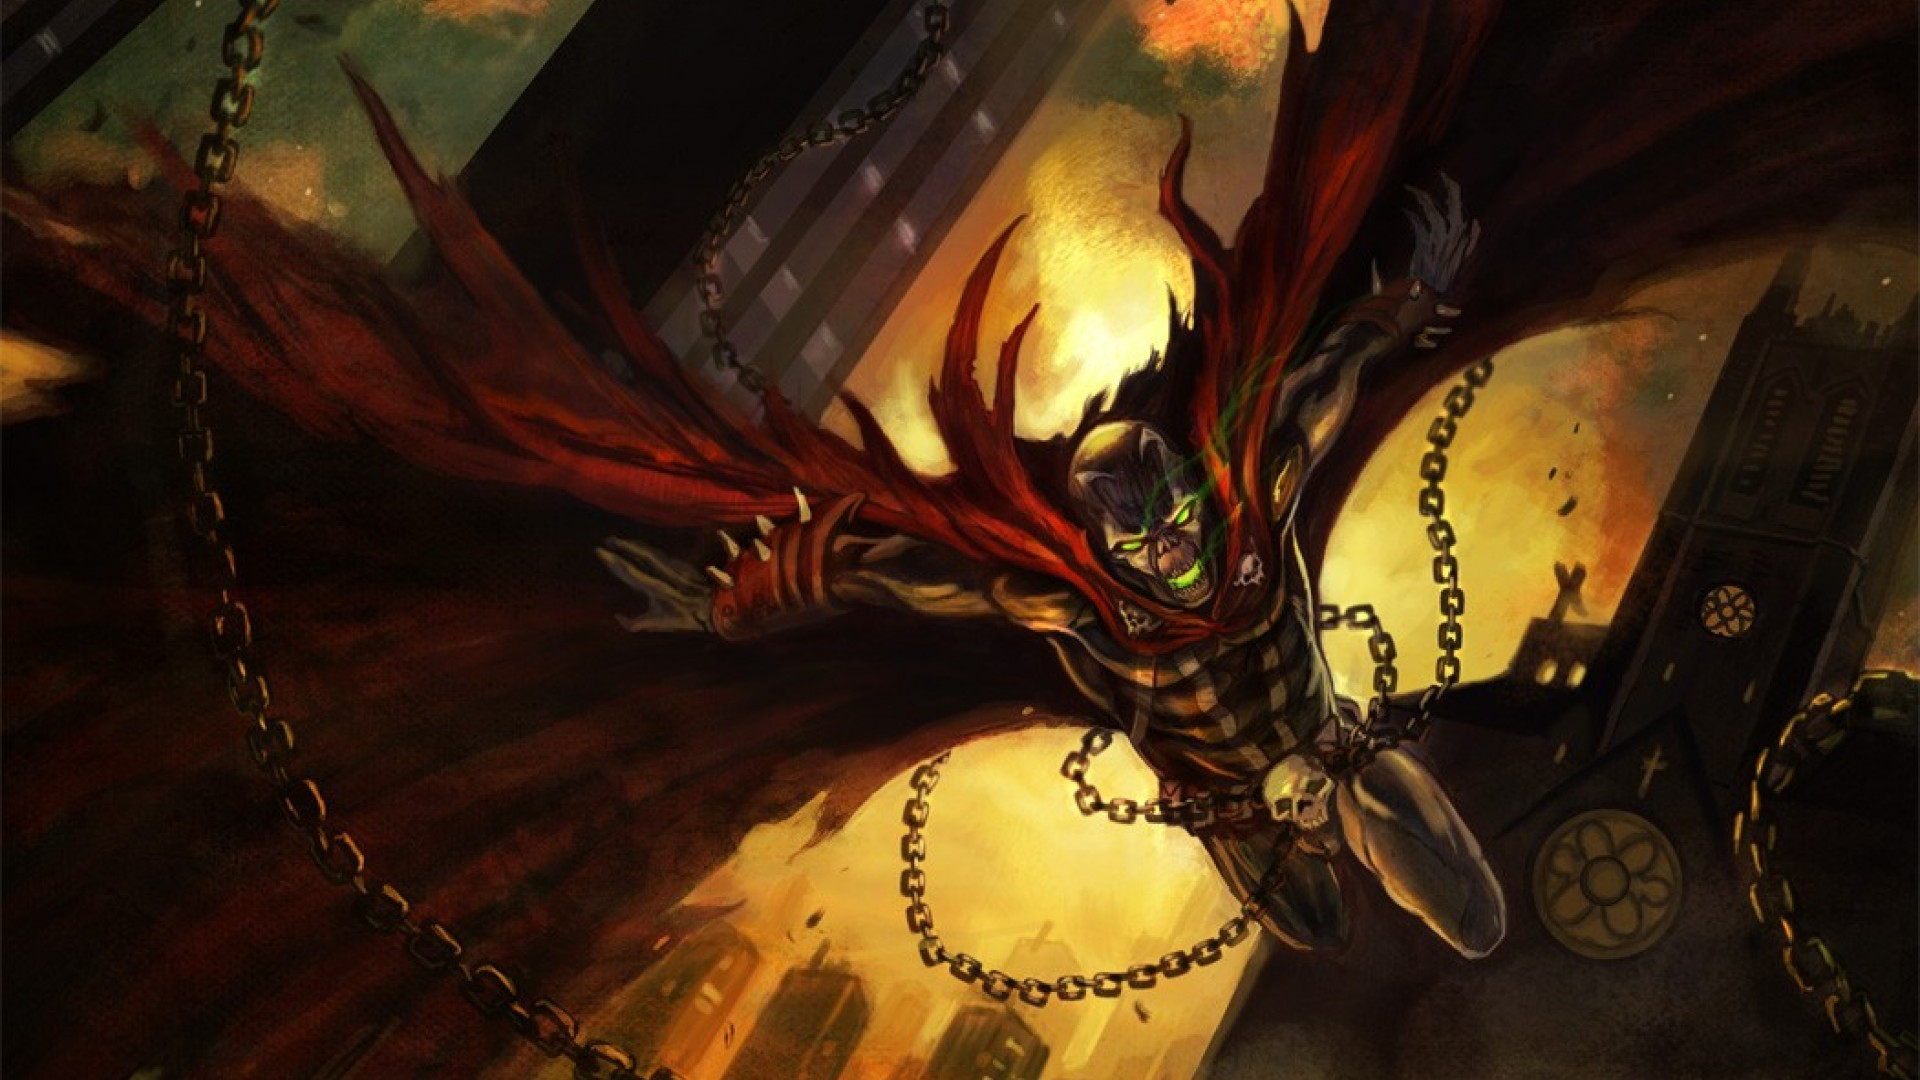 spawn wallpapers 1920x1080 - photo #2